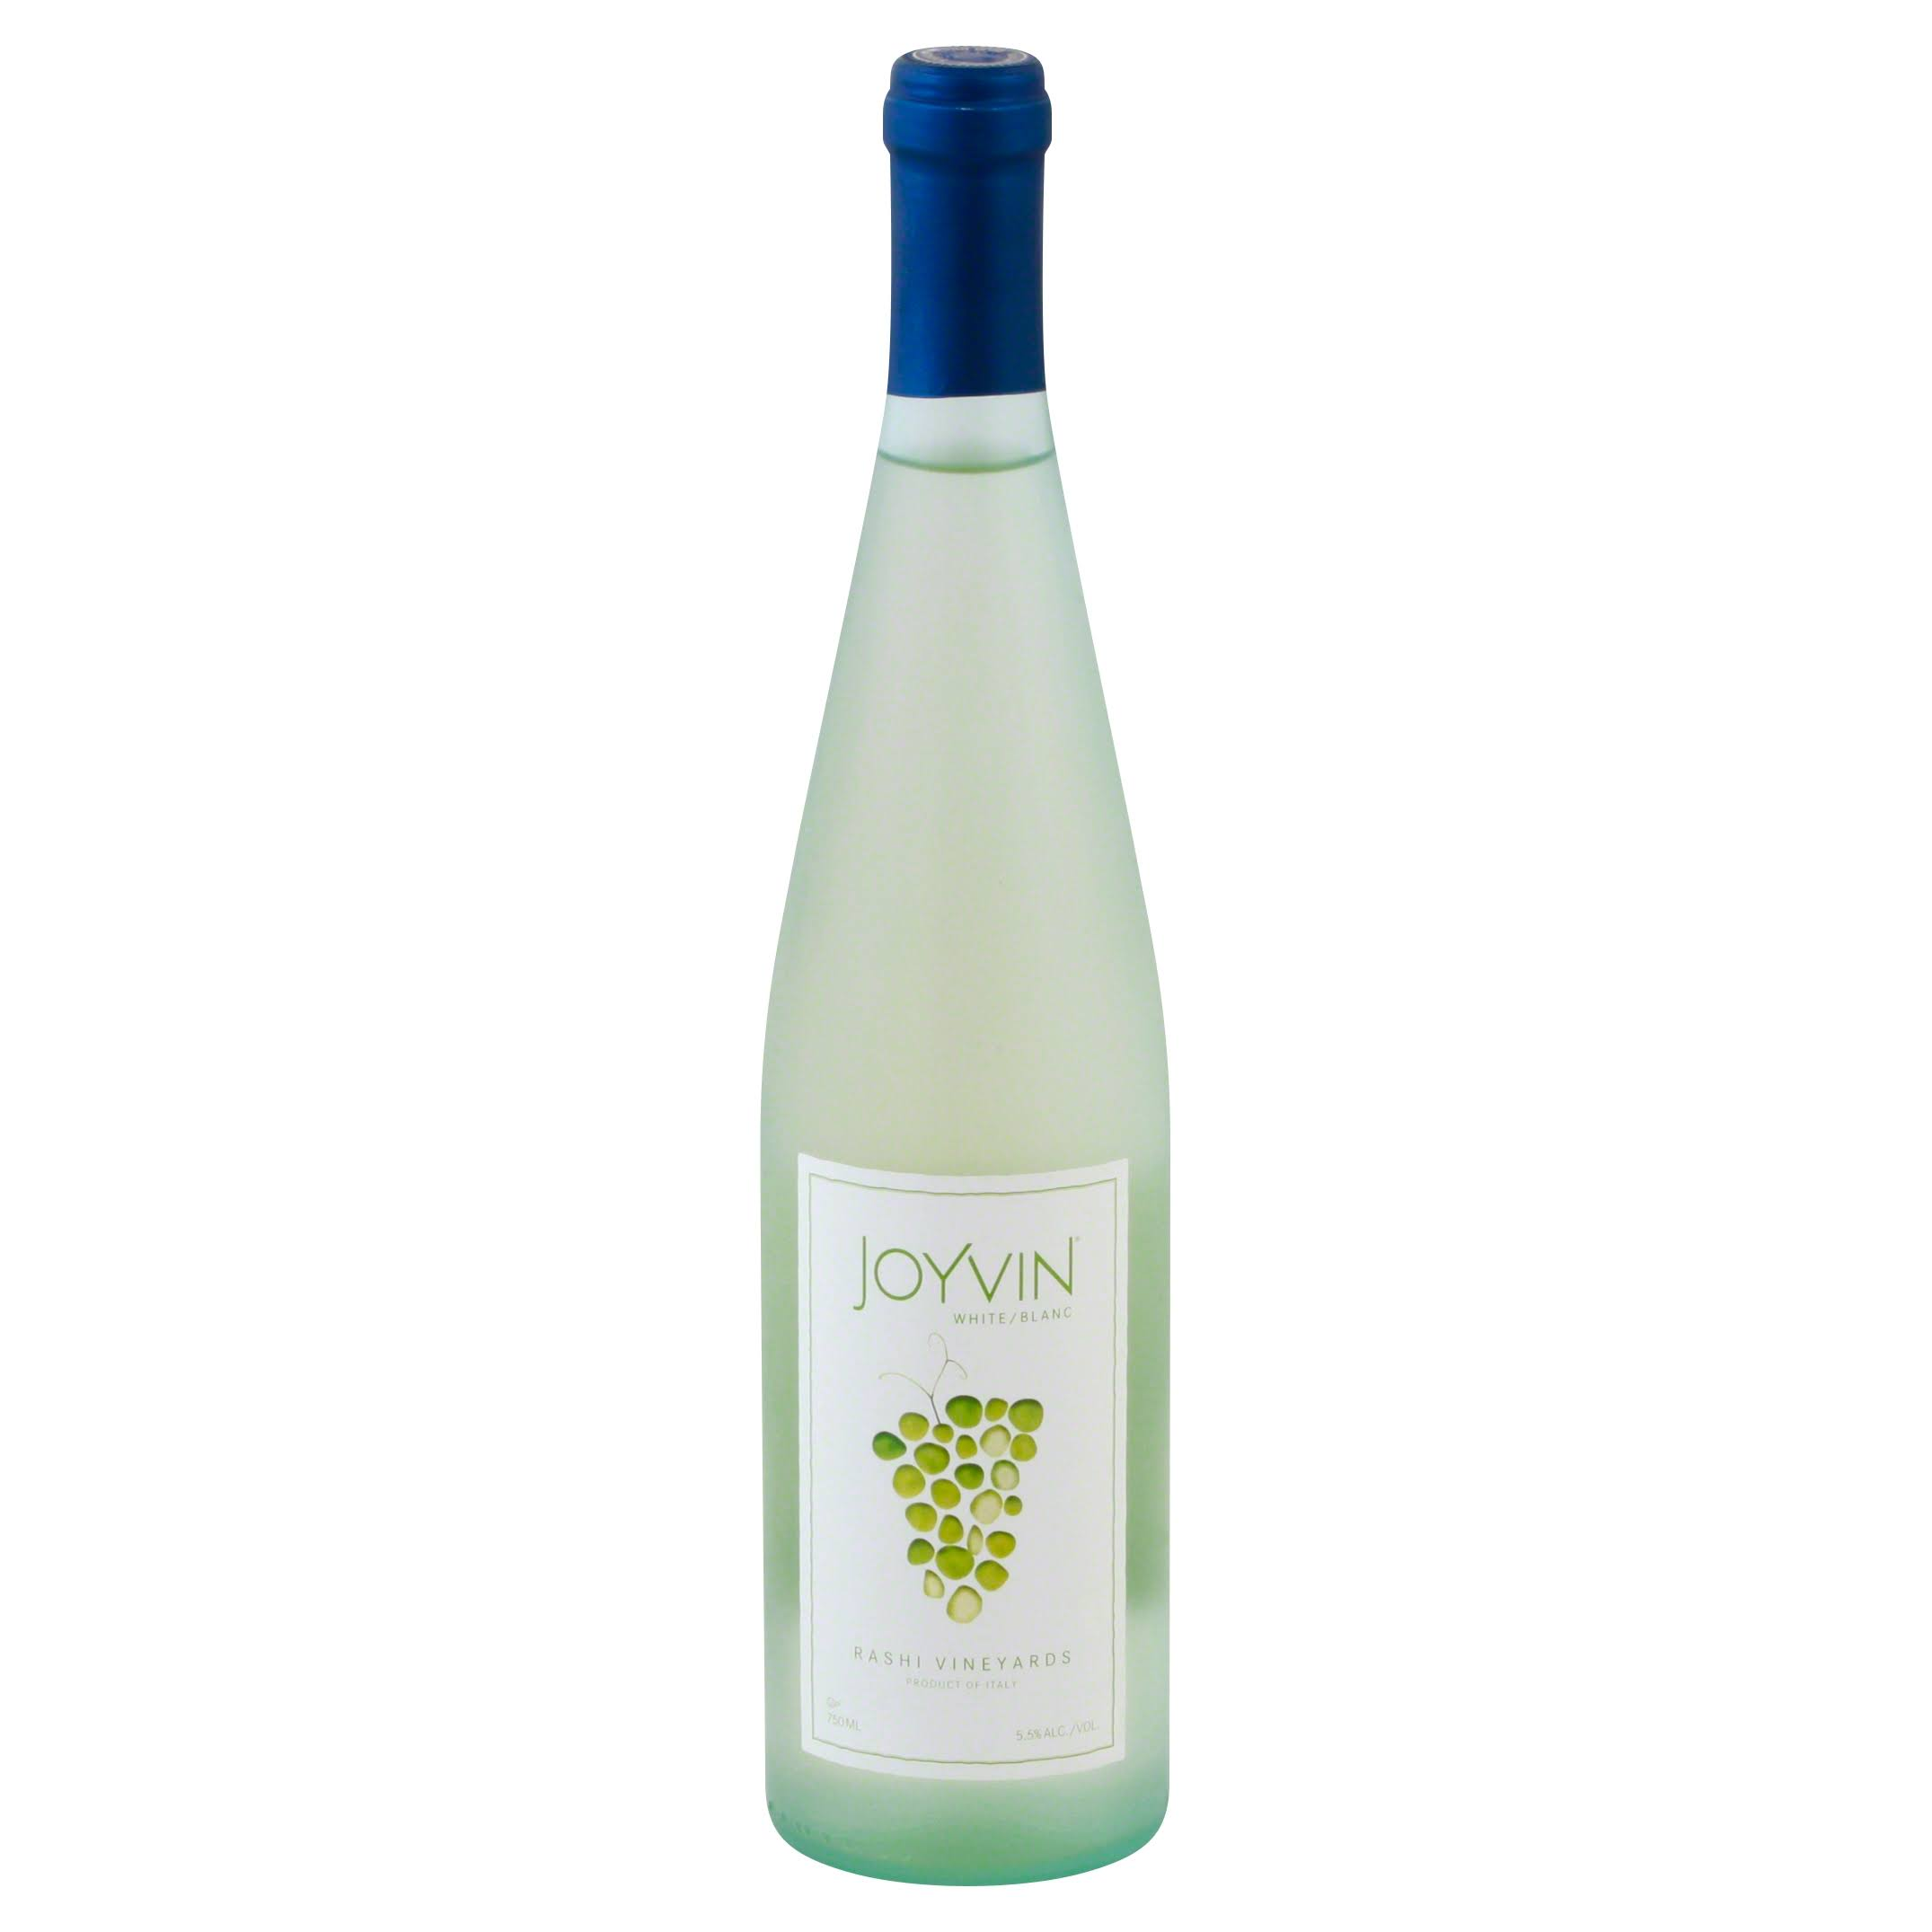 Joyvin White Wine,Vineyards Rashi - 750 ml